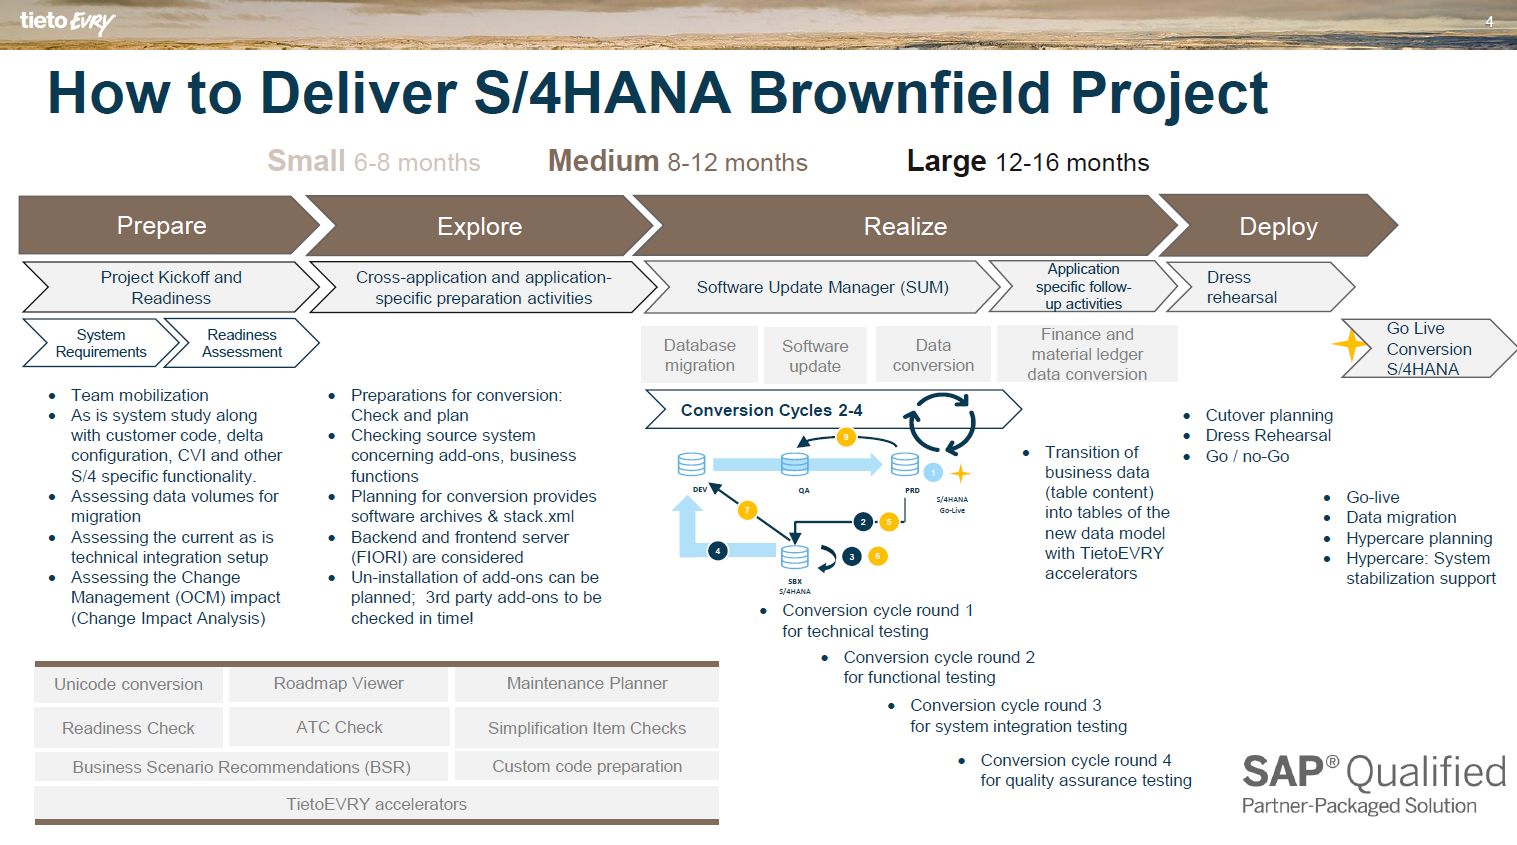 How to Deliver S/4HANA Brownfield Project